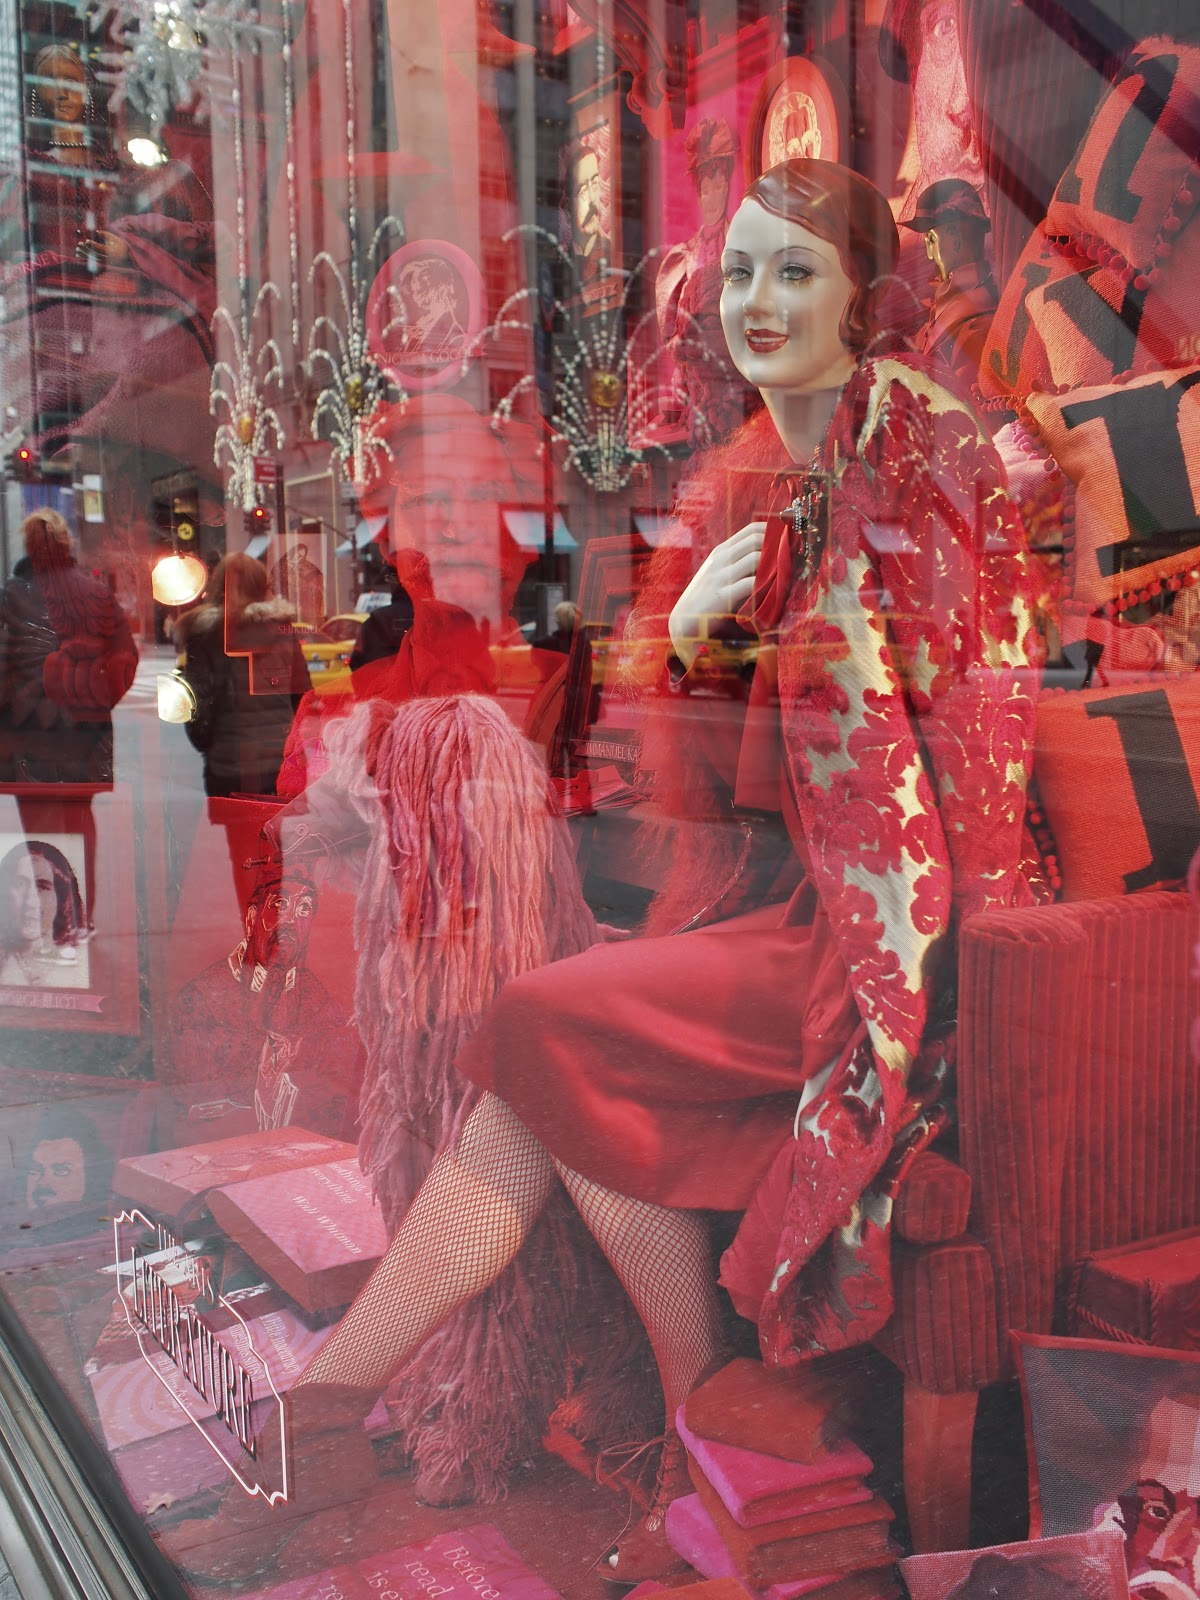 Fishnets #Fishnets #bgwindows # #holidaywindows #5thavenuewindows #NYC  #holidays #besttimeoftheyear #nyc ©2014 Nancy Lundebjerg